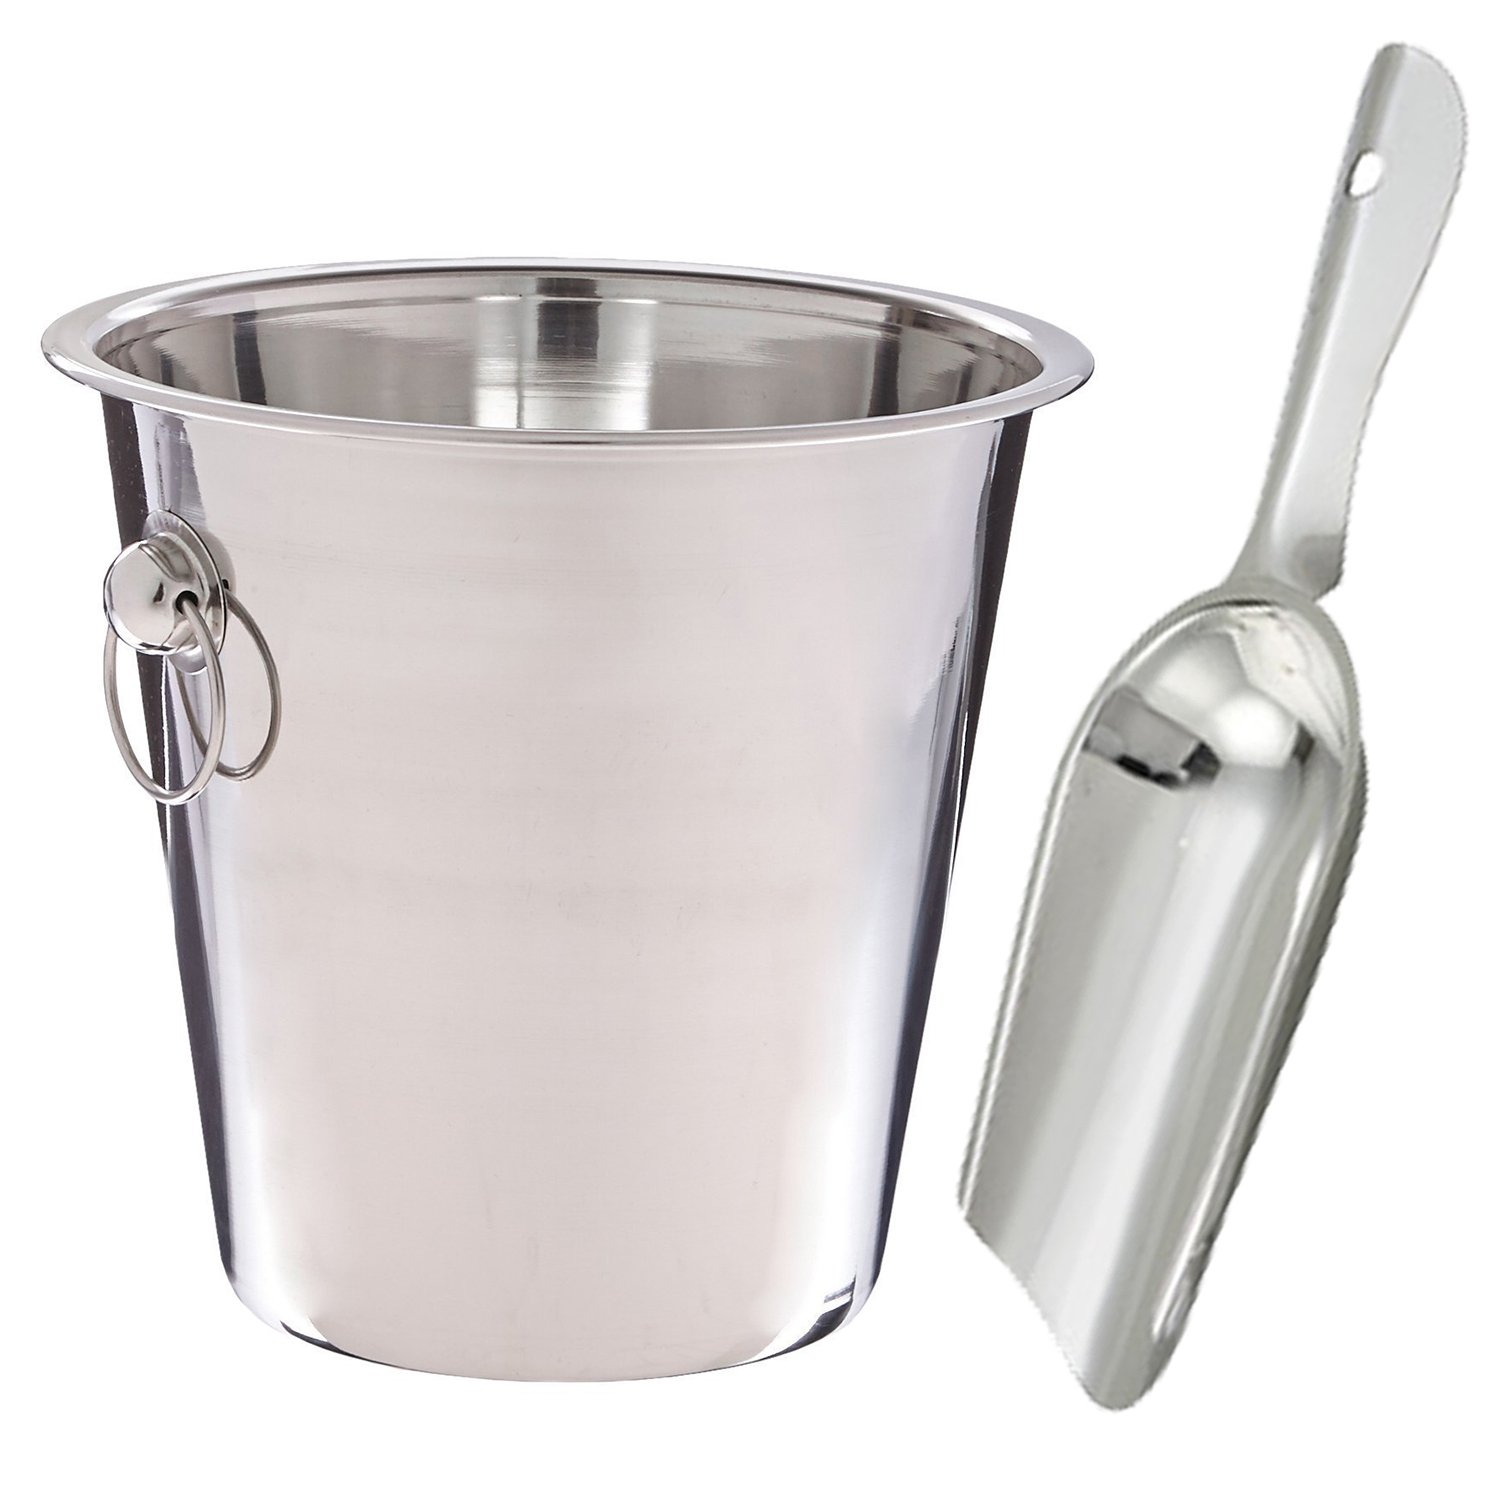 Wine Bucket 4 qt. Stainless Steel 4 oz. Ice Scoop CUL-IBS55